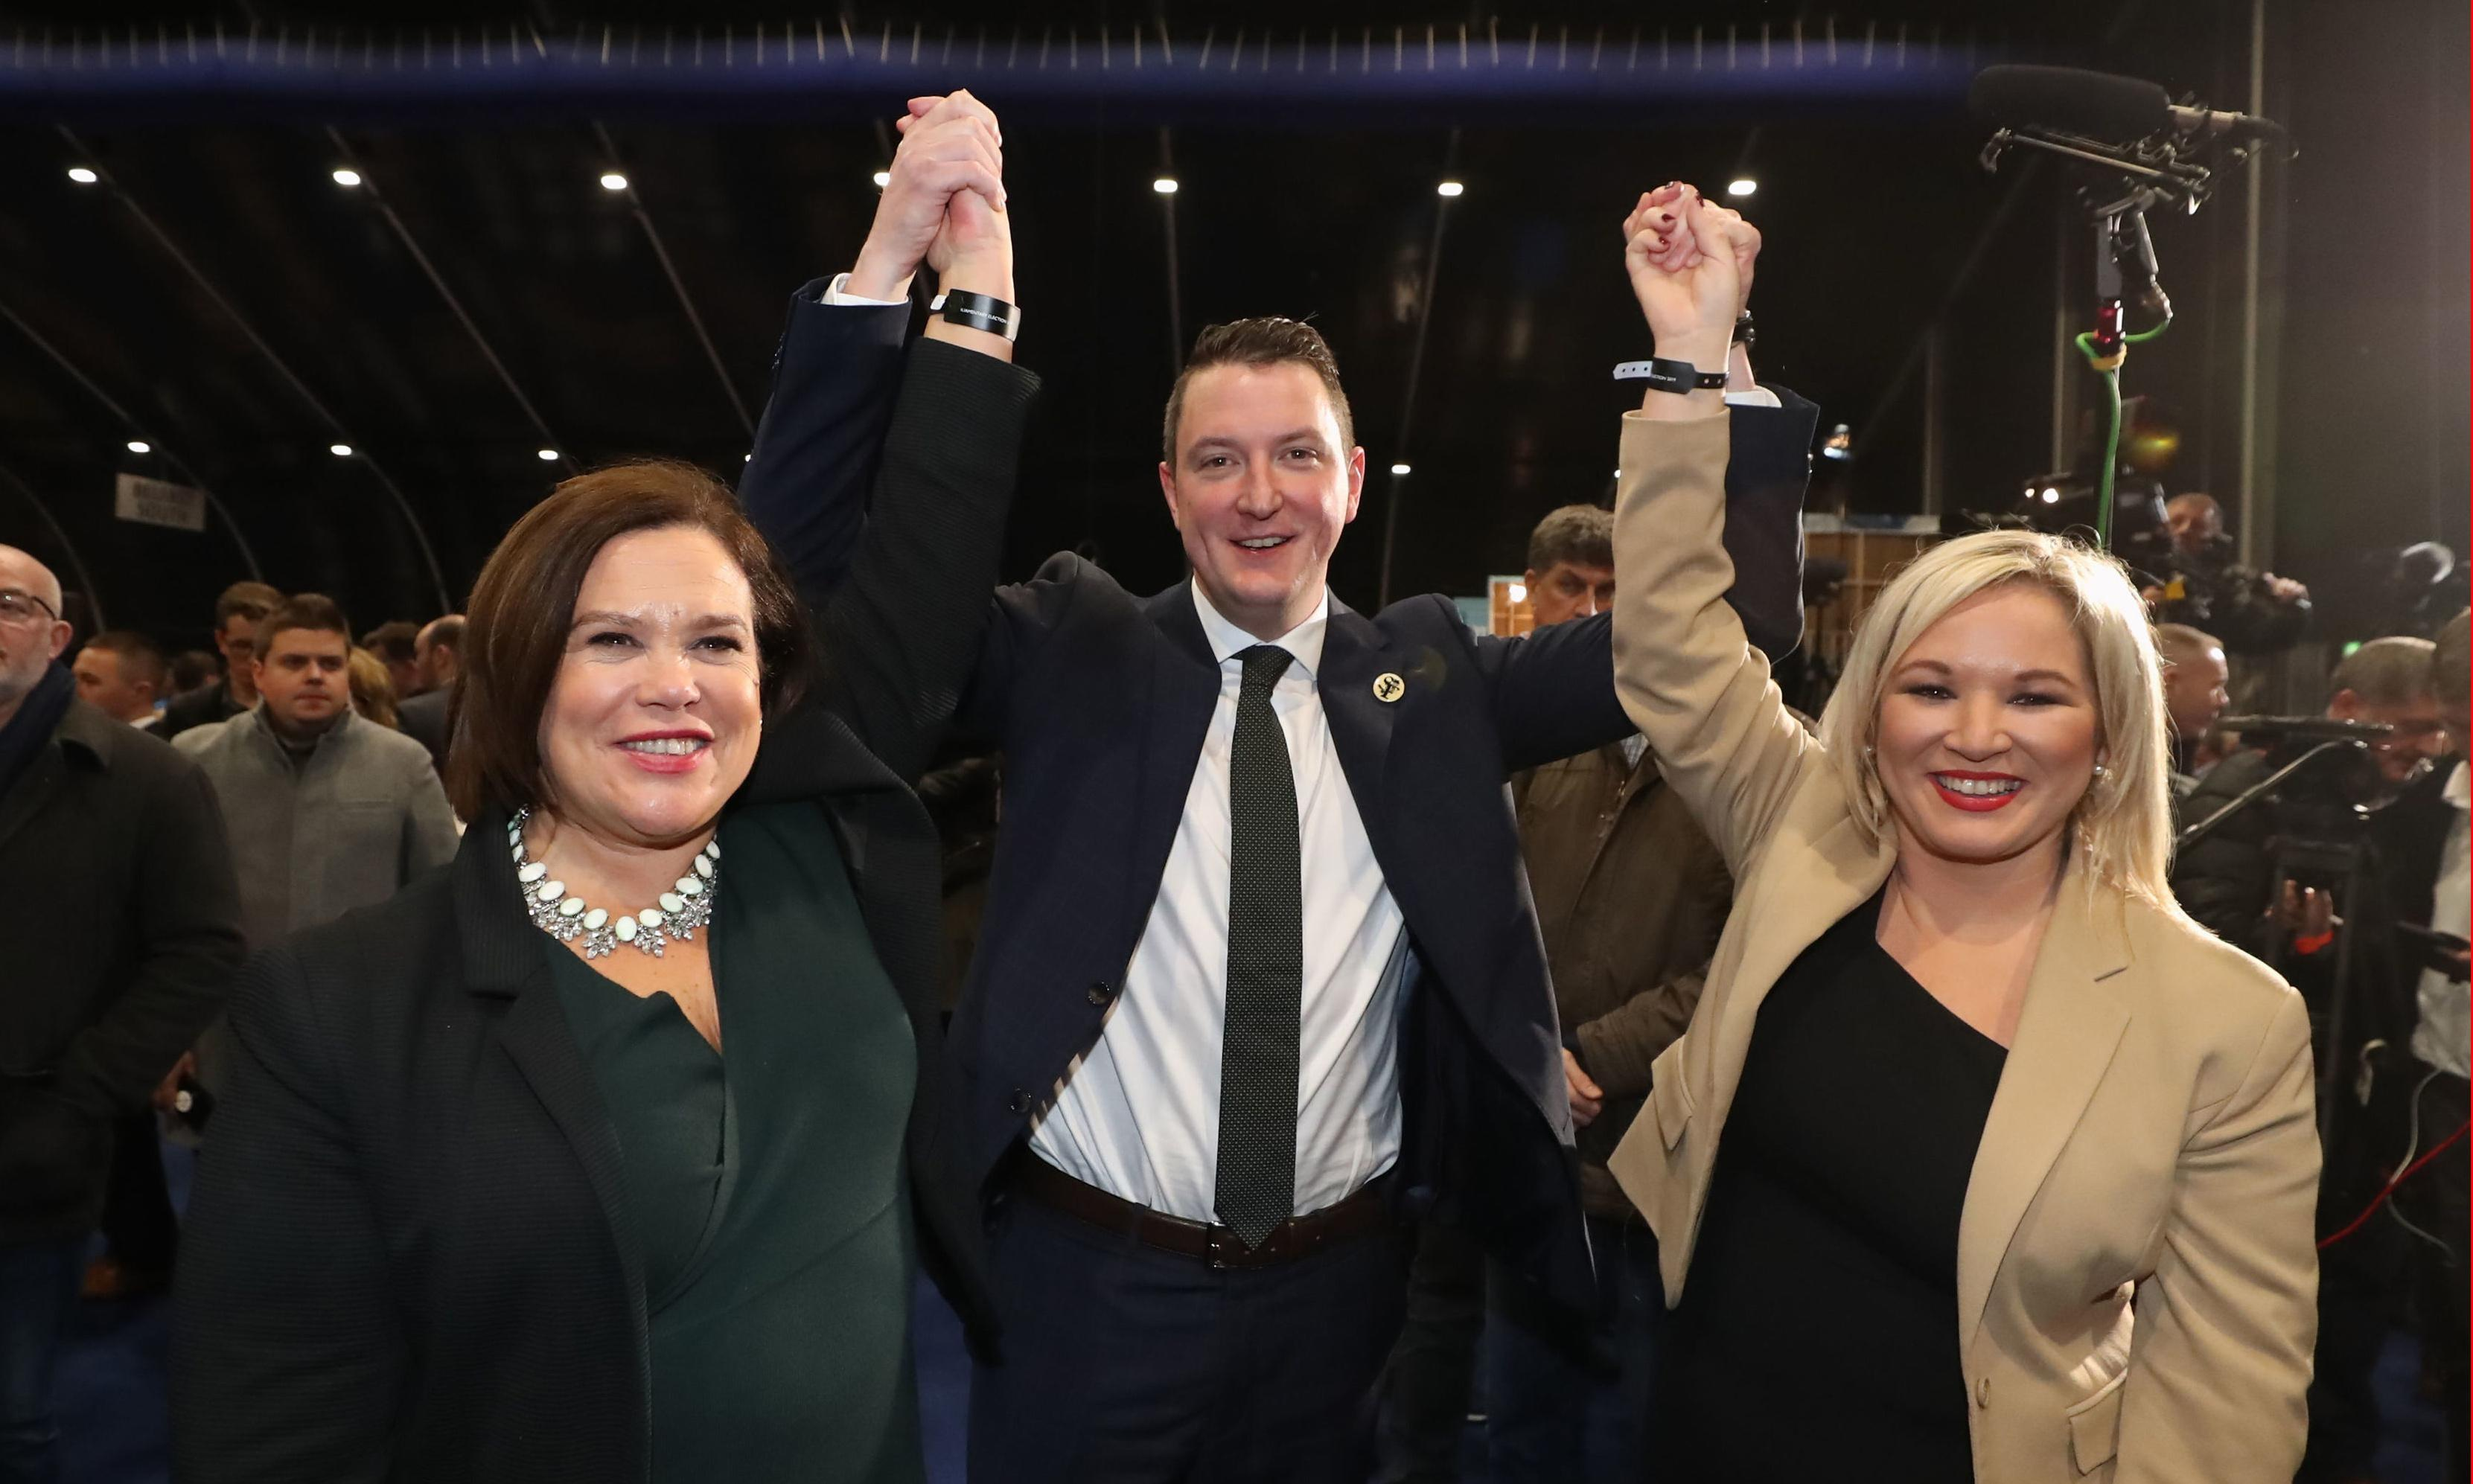 Northern Ireland's sectarian parties punished by rise of the non-aligned